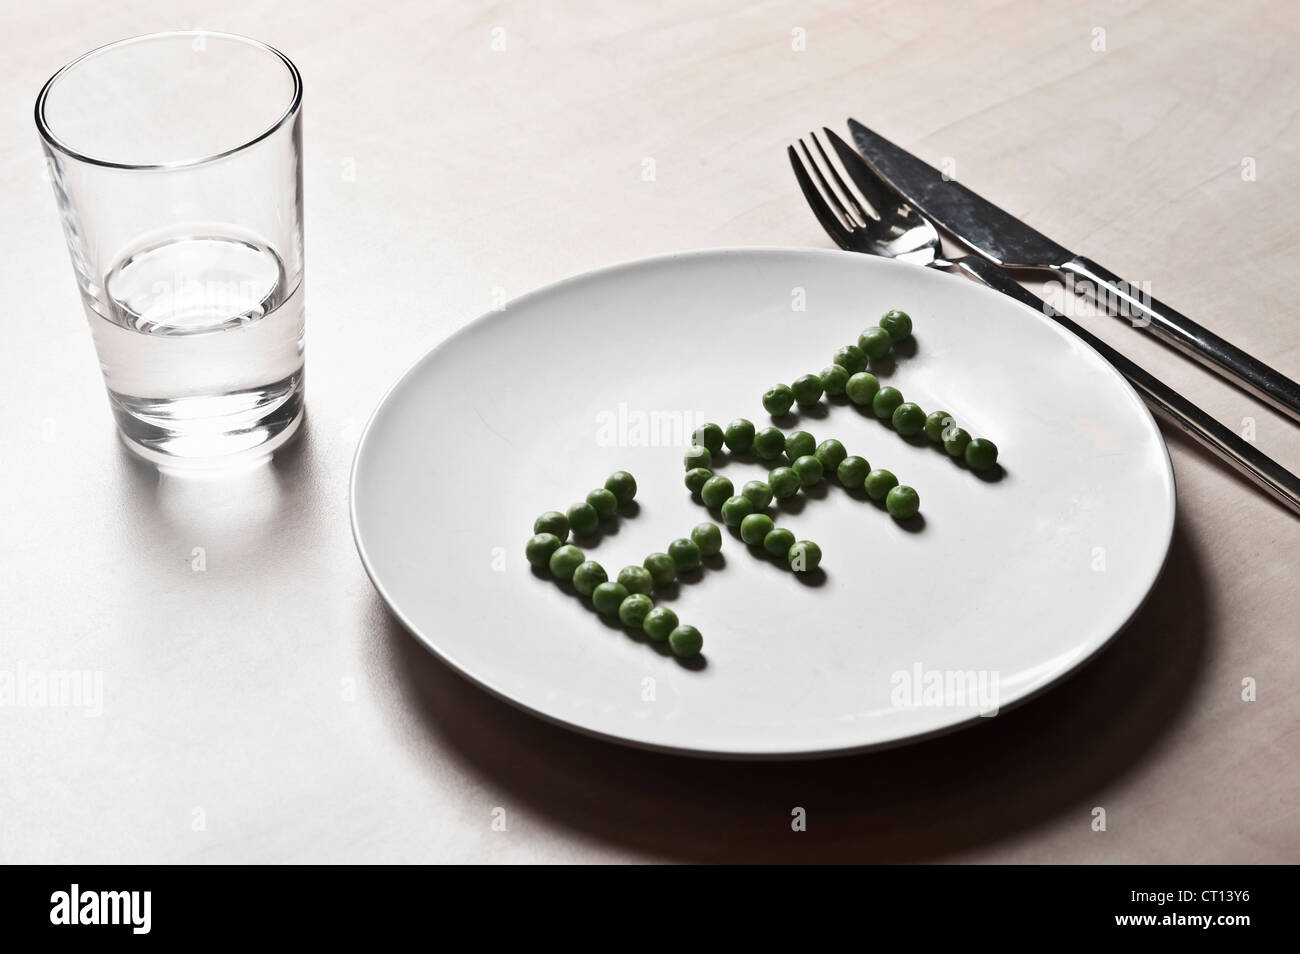 Peas arranged to spell fat on plate - Stock Image